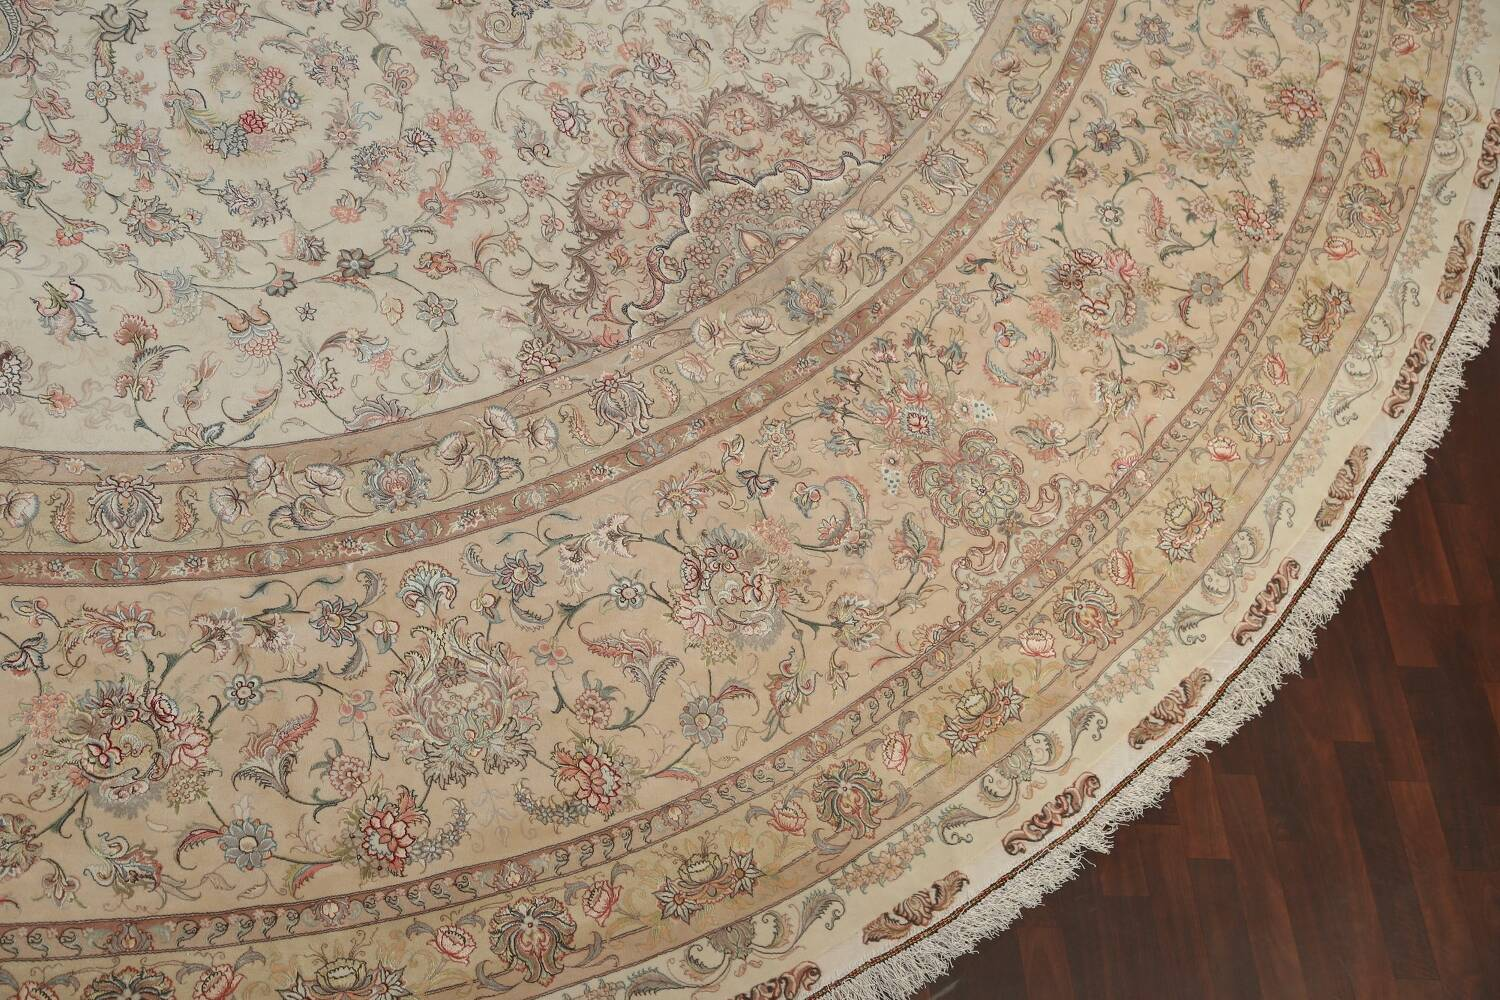 100% Vegetable Dye Floral Tabriz Persian Area Rug 22x23 Round image 6